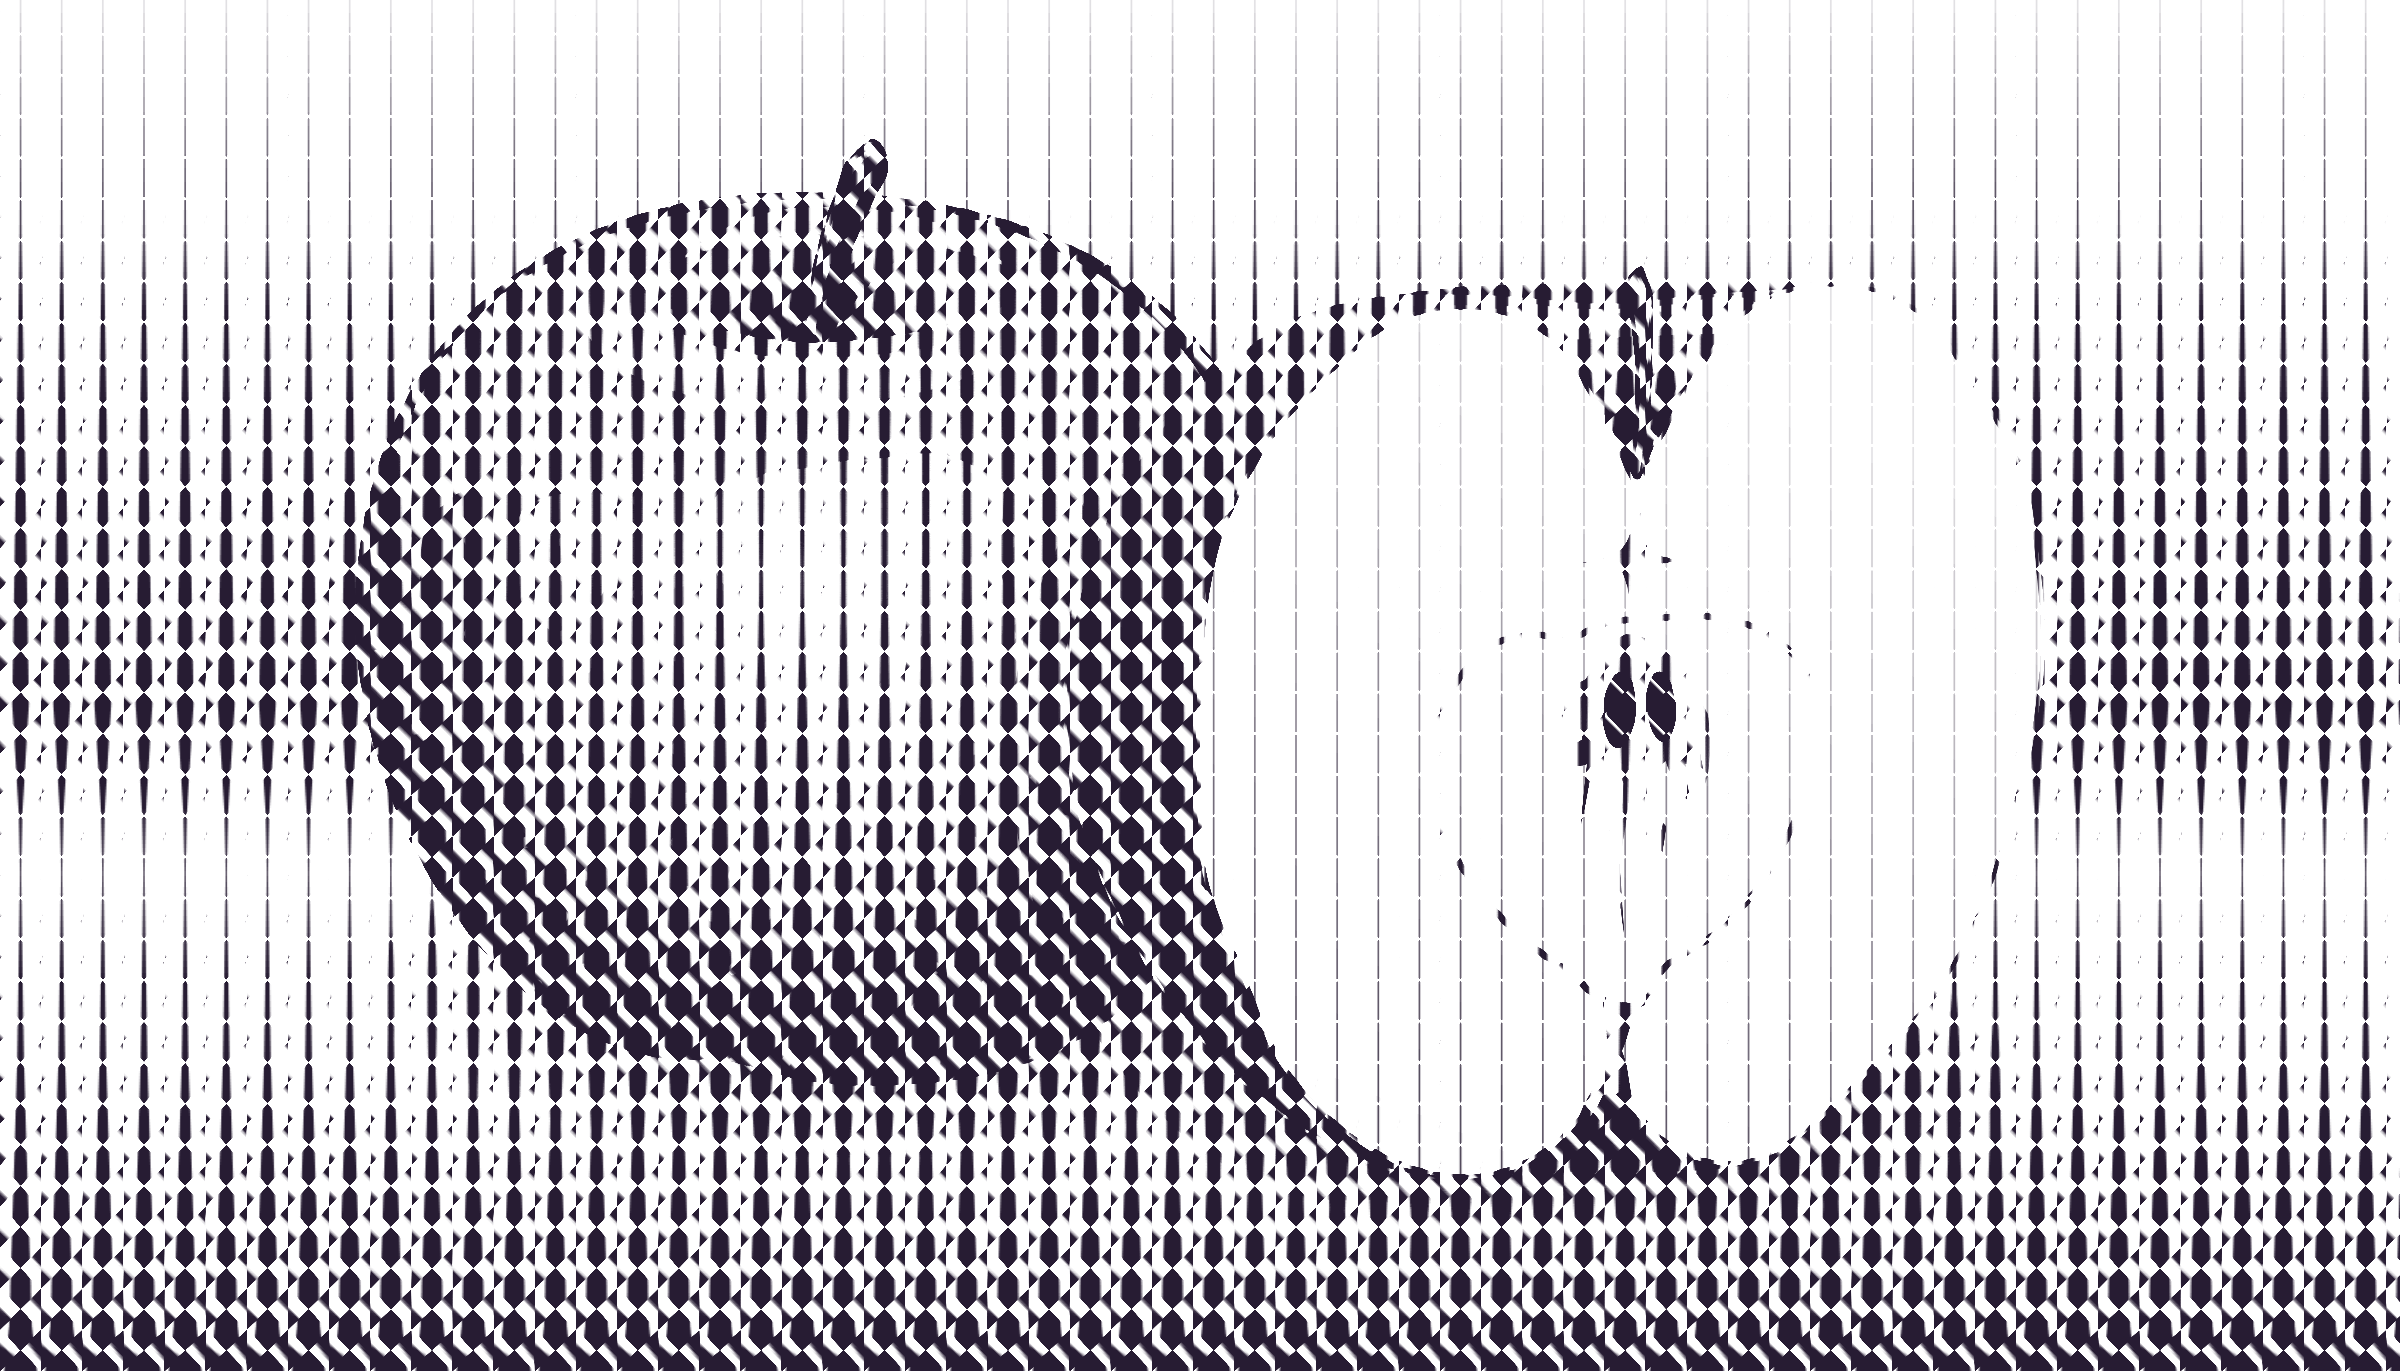 halftone apple 12 by Lazur URH